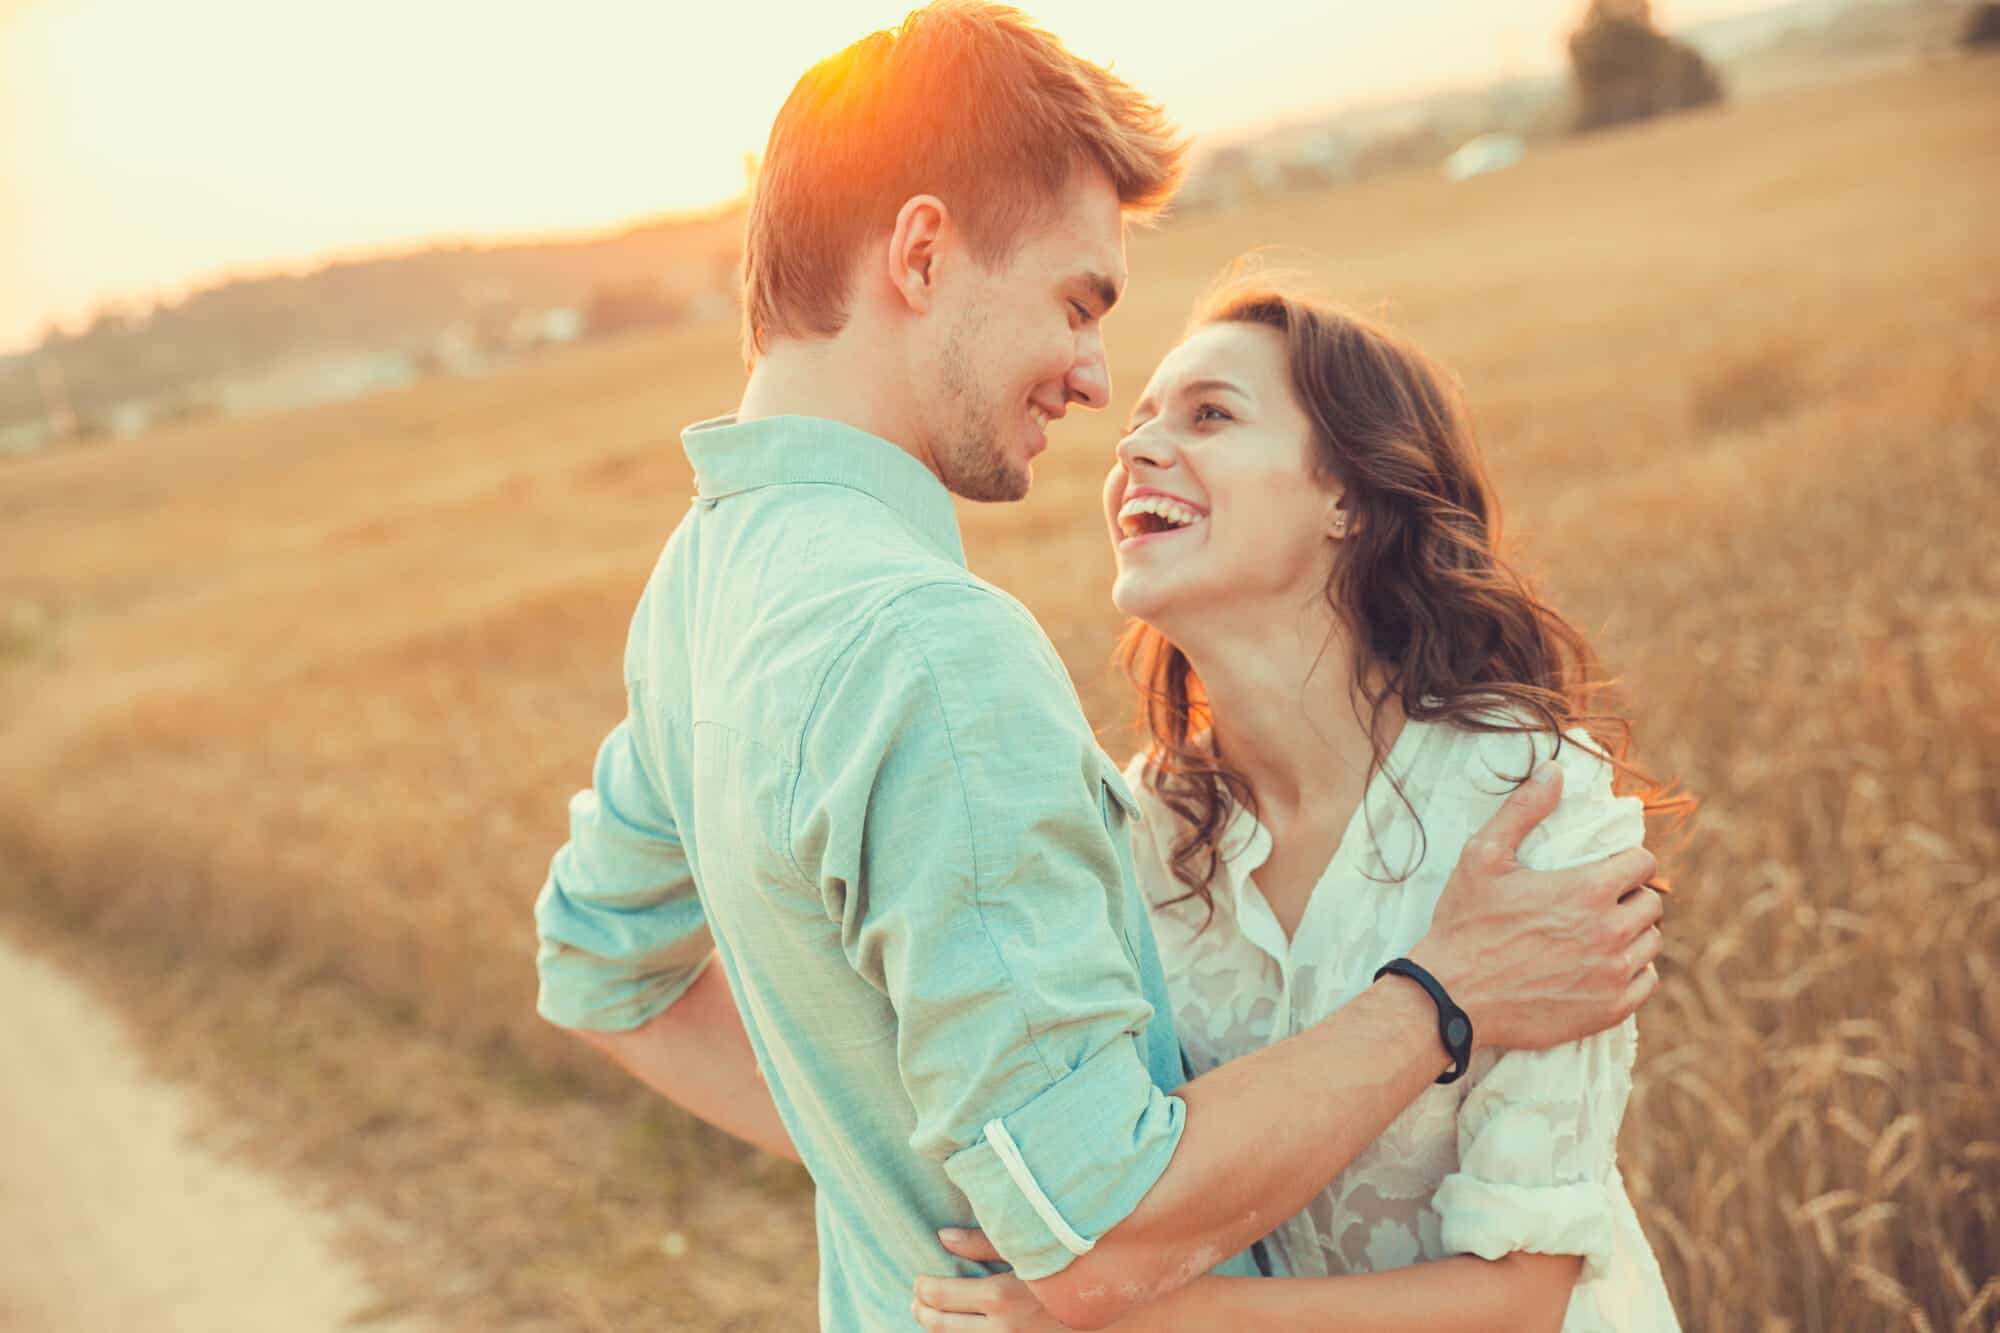 How to Tell if a Girl Likes You - 10 Signs She's Into You